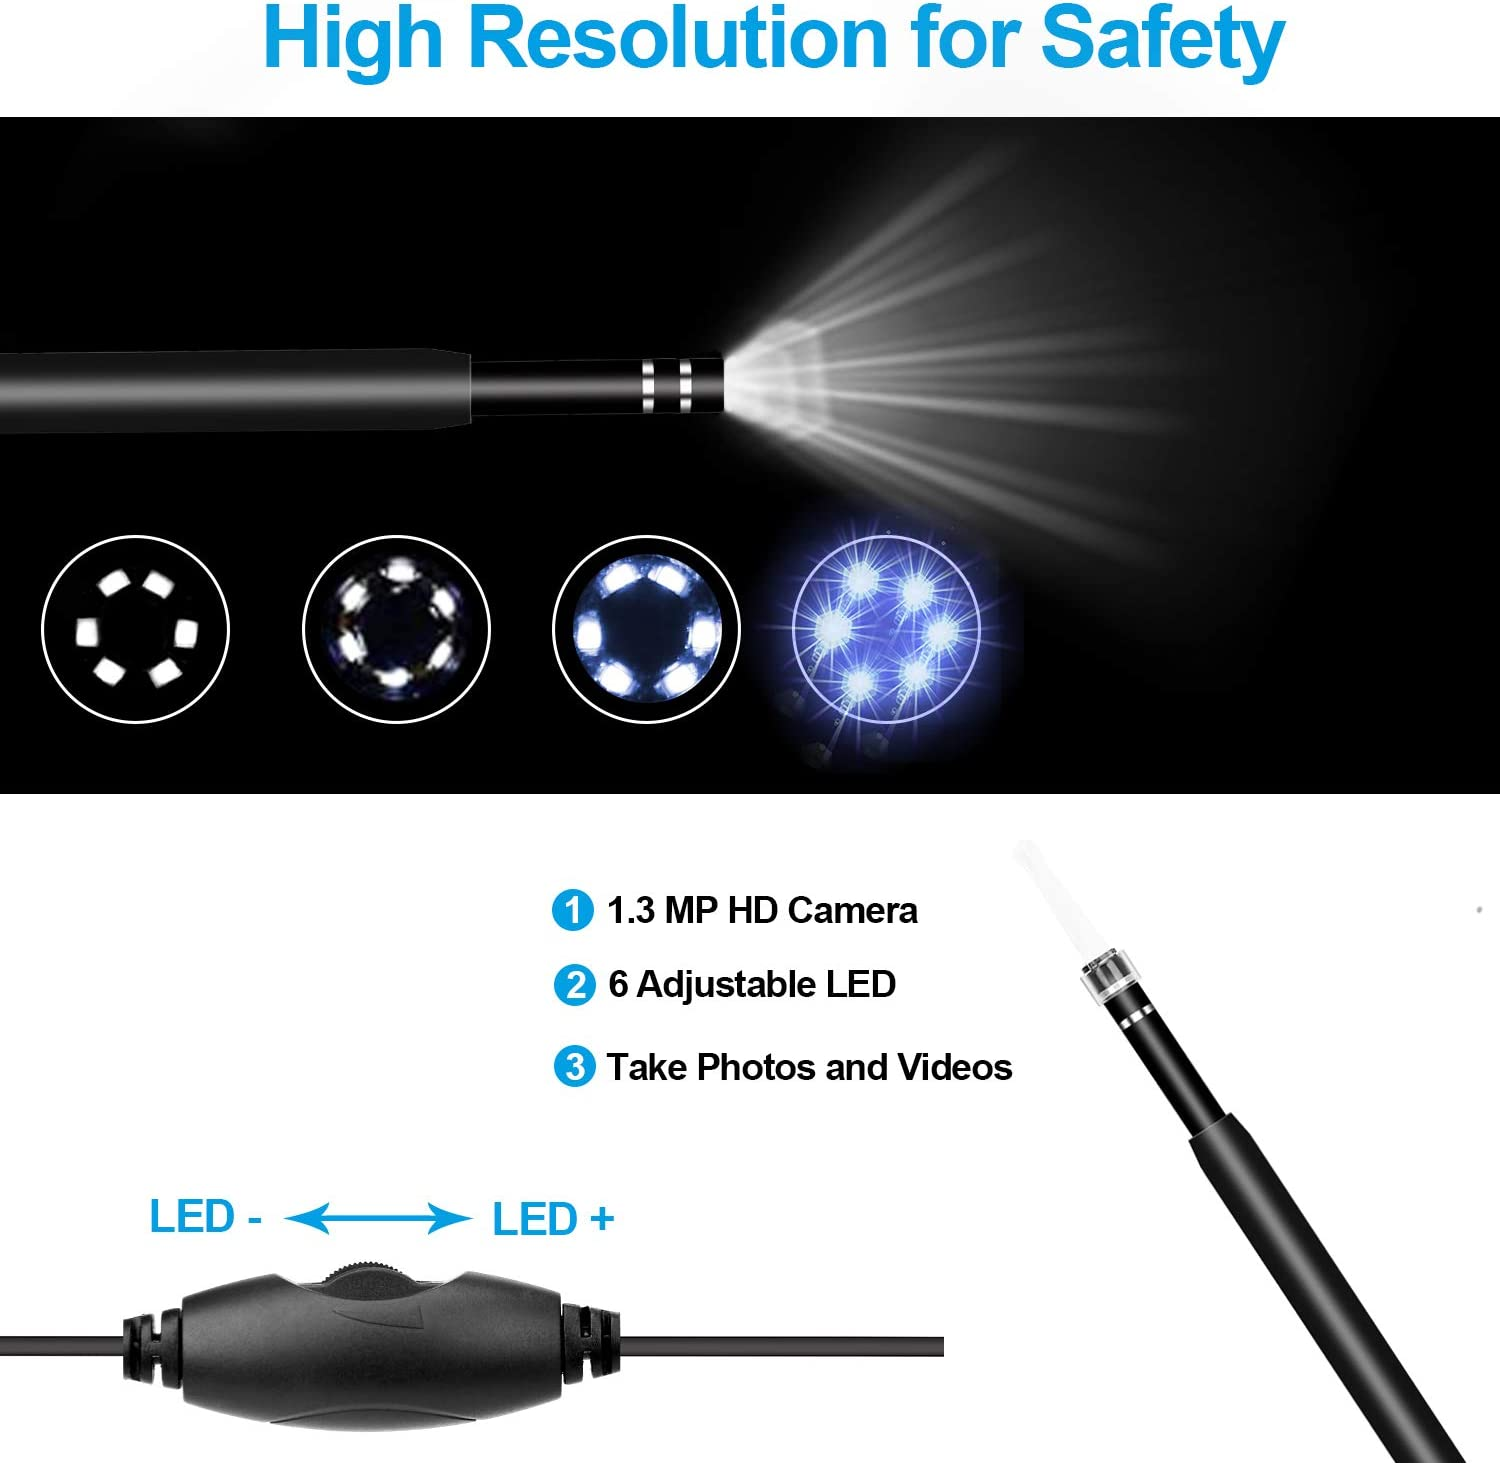 Compatible with Android and PC Otoscope USB Ear Camera Coligbat New Upgraded 4.3mm HD Inspection Camera 6 Adjustable LED Lights with Ear Wax Removal Tools Ear Endoscope